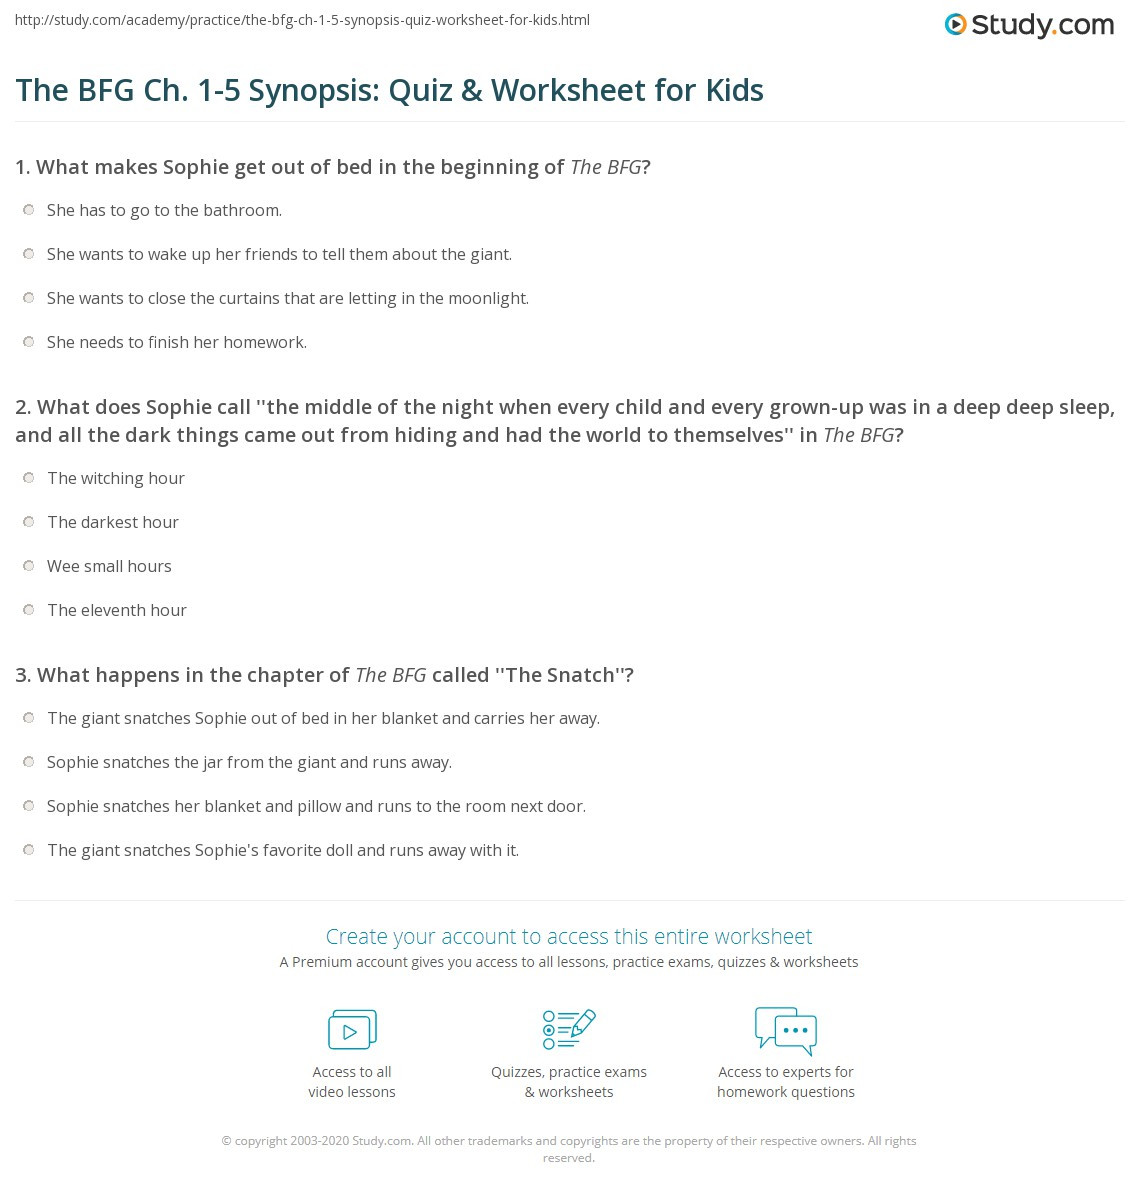 Summary Worksheets Middle School the Bfg Ch 1 5 Synopsis Quiz & Worksheet for Kids